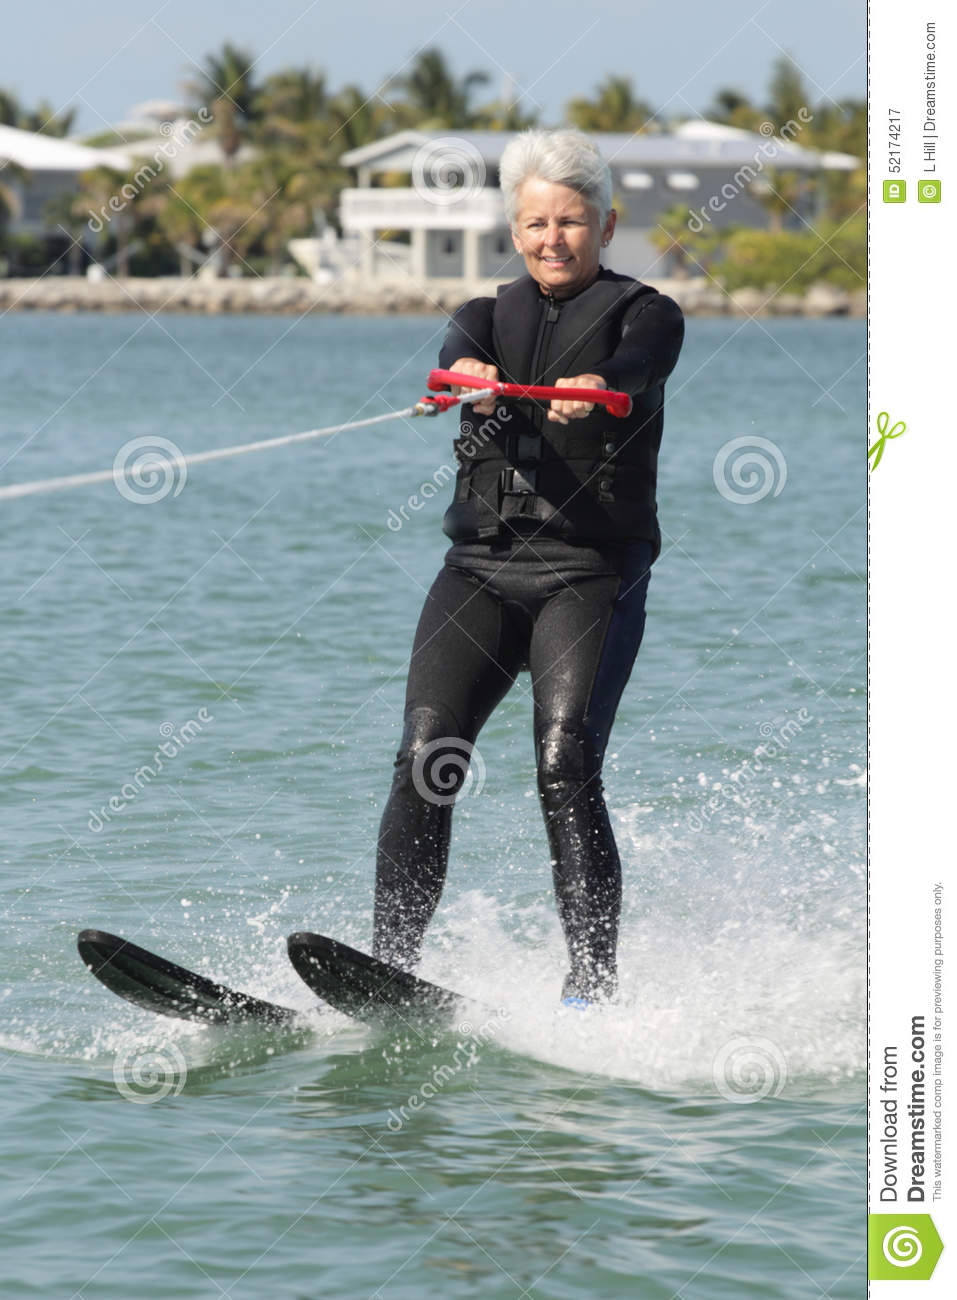 Pretty Older Lady Water Skiing by Nice House.